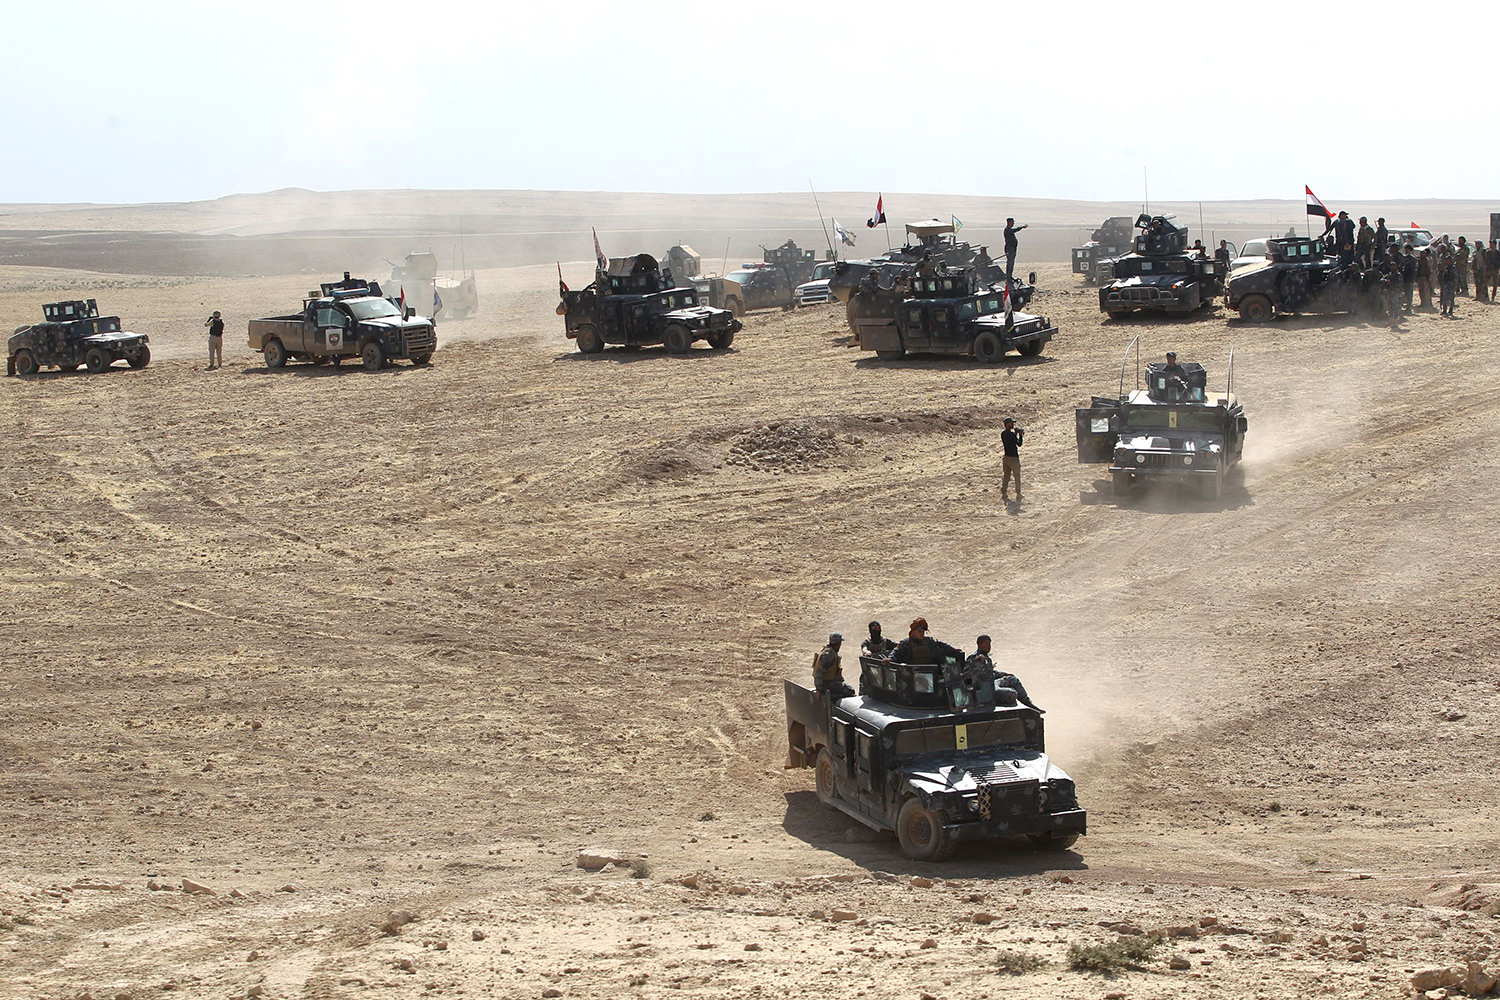 "TOPSHOT - Iraqi forces deploy in the Bajwaniyah village, about 30 kms south of Mosul, on October 18, 2016 after they liberated the village from Islamic State (IS) group jihadists. Tens of thousands of Iraqi forces were making gains on the Islamic State group in Mosul in an offensive US President Barack Obama warned would be a ""difficult fight"". / AFP PHOTO / AHMAD AL-RUBAYE / TT / kod 444"